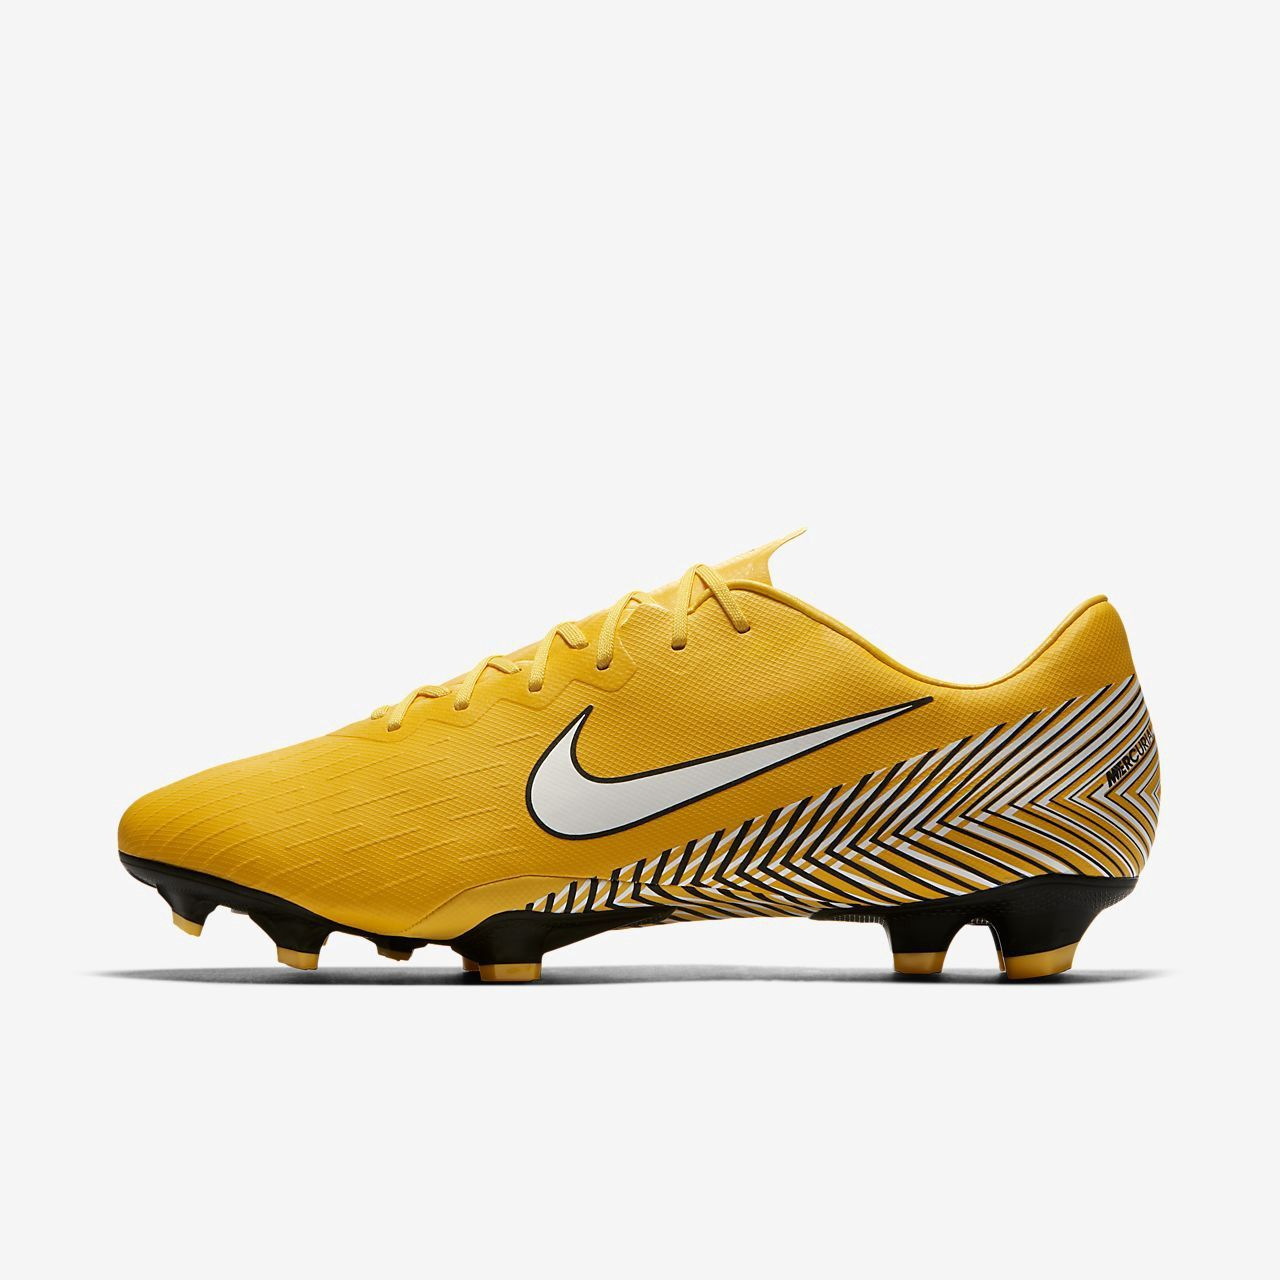 836b66a09f814 Nike Mercurial Vapor Xii Pro Neymar Jr Men's Firm-Ground Soccer ...